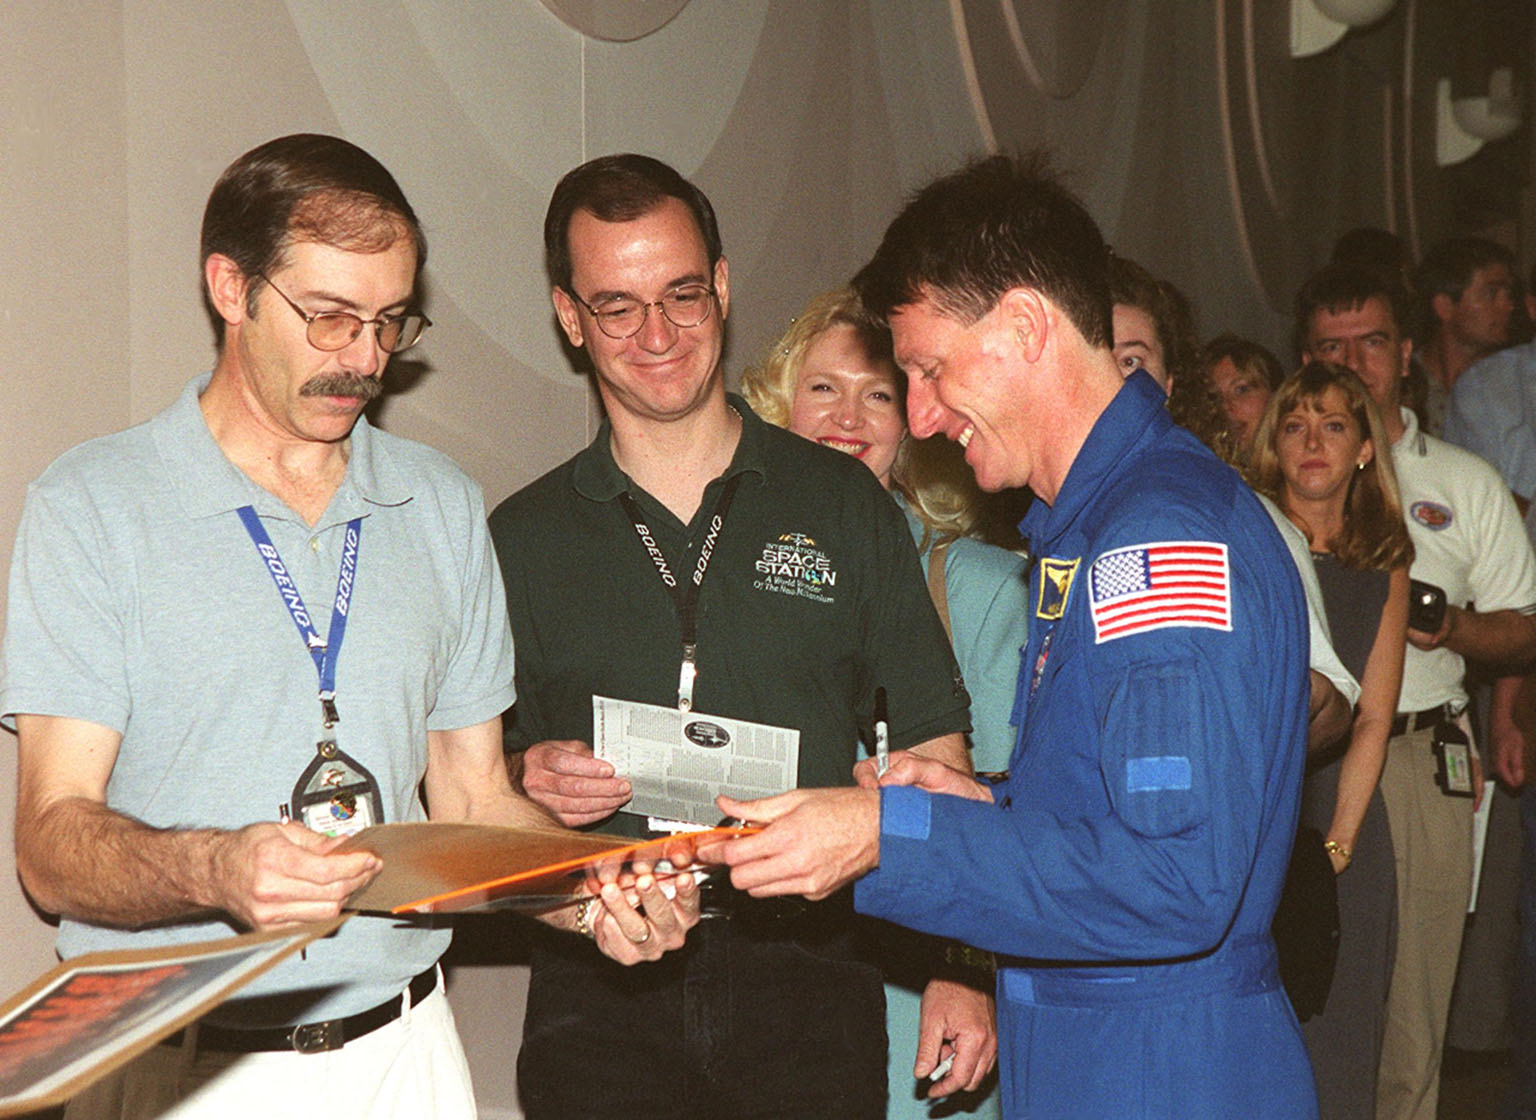 STS-103 Mission Specialist Michael Foale autographs mementos for Boeing-KSC employees. Foale and other crew members gave a presentation at the Center for employees and VIPs about their mission to service the Hubble Space Telescope. STS-103 launched Dec. 19, 1999, and landed Dec. 27, 1999, after a successful mission that included three space walks